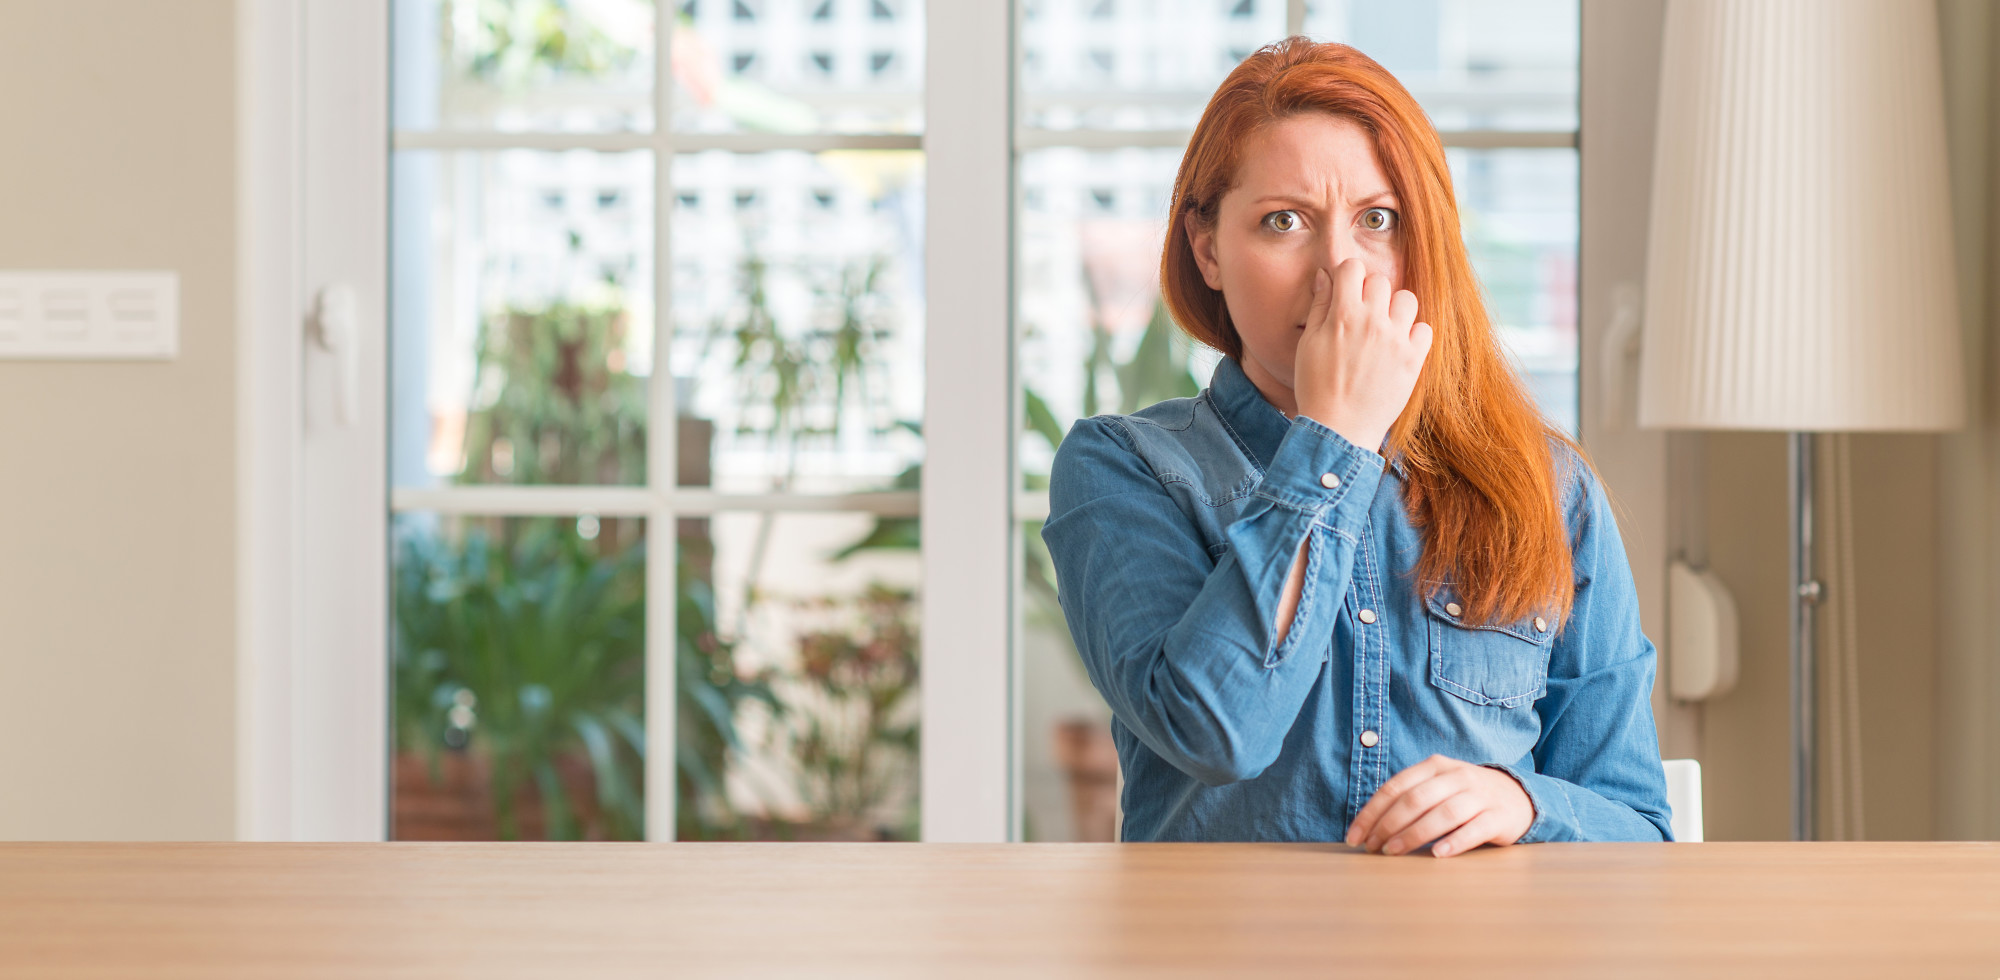 8 Reasons Why Your AC Smells Bad (and What to Do About It)